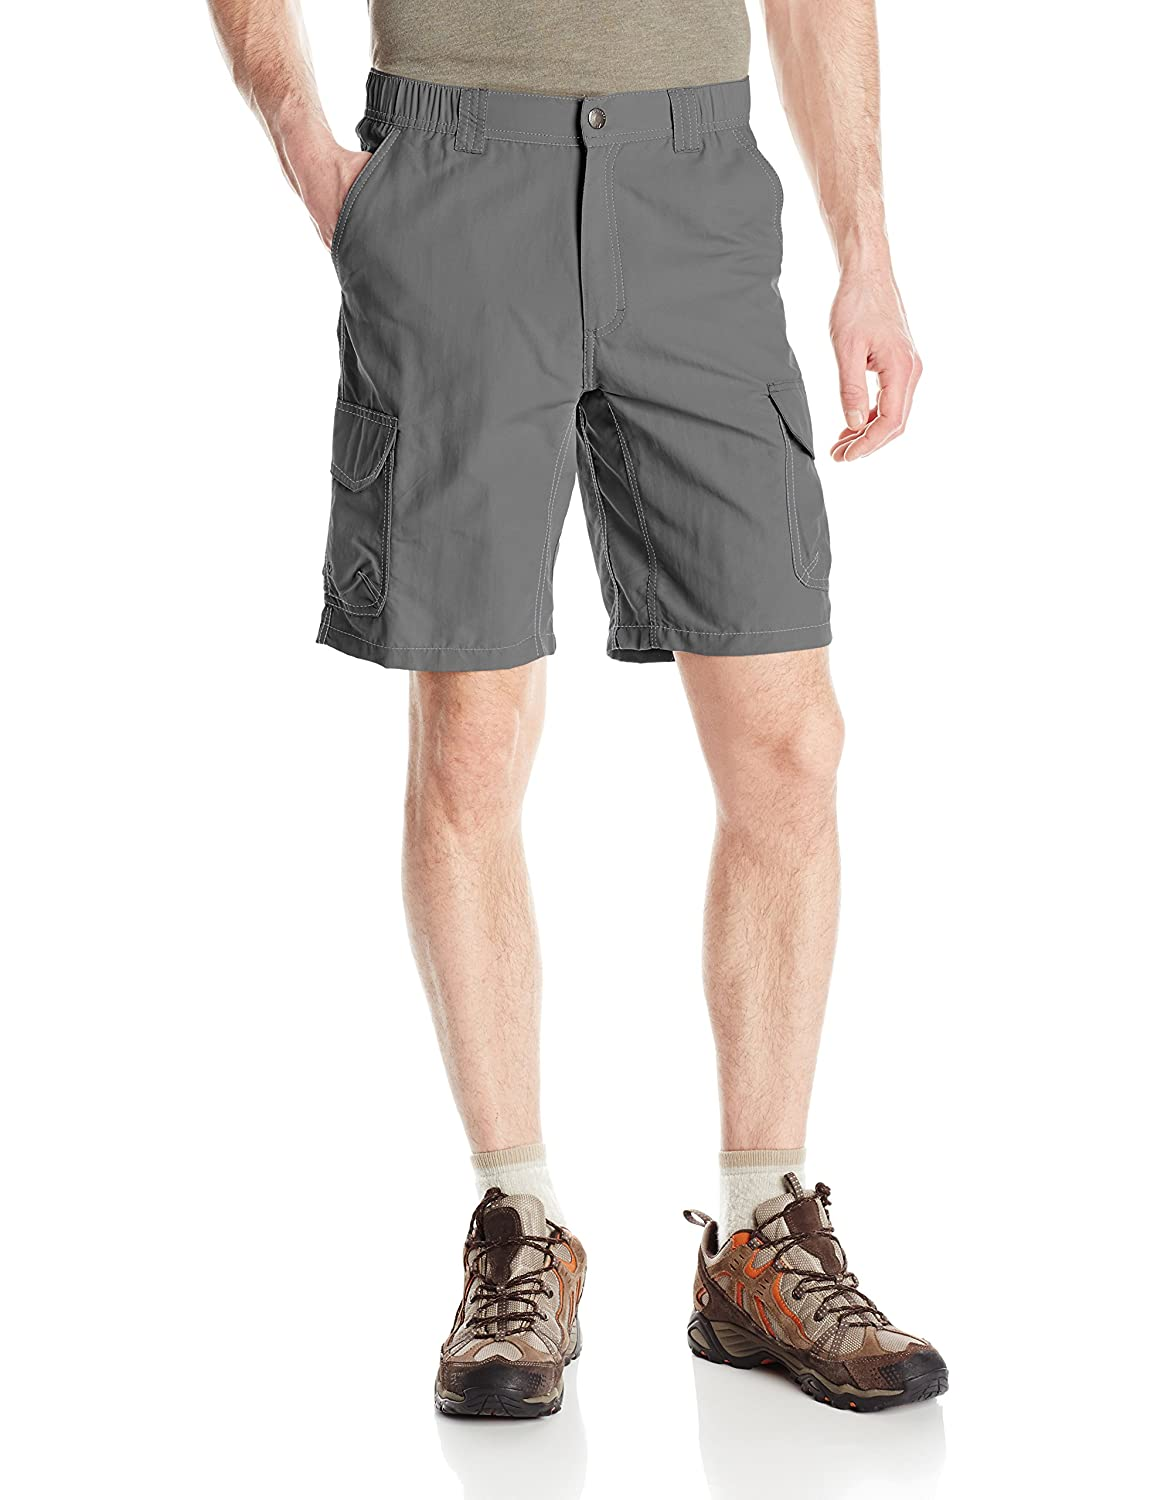 White Sierra ROCKY Ridge Ii Short - 10 inseam